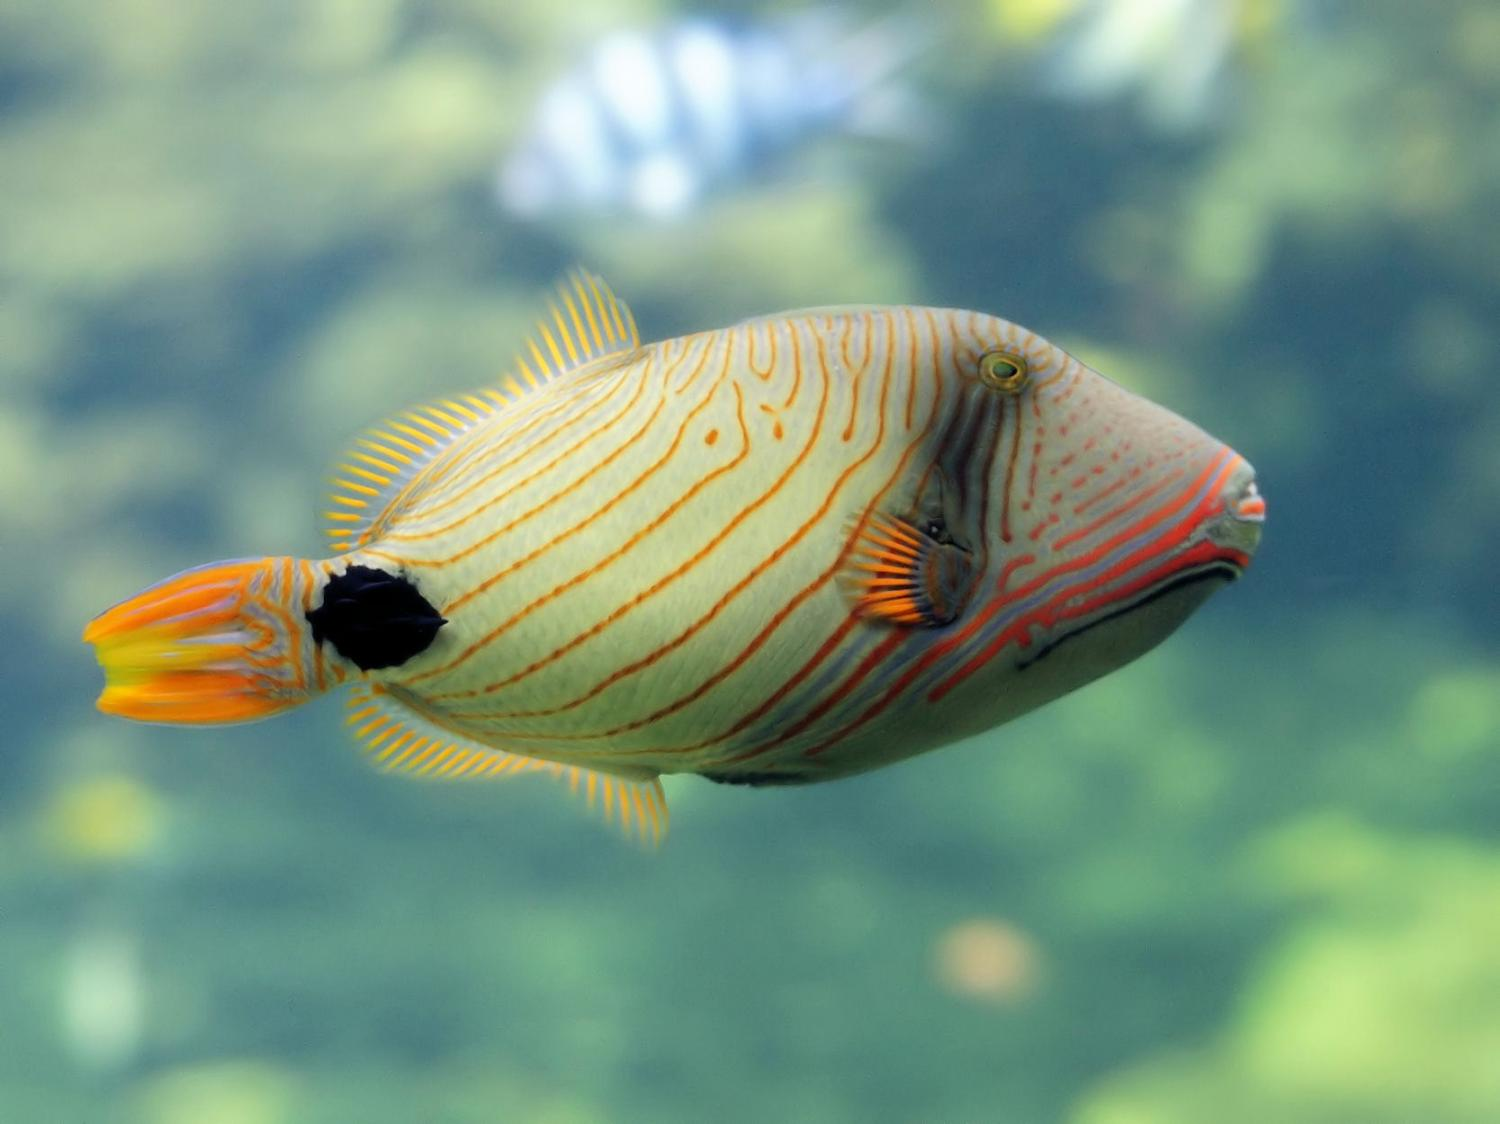 Triggerfish needed to grow reefs, new research finds